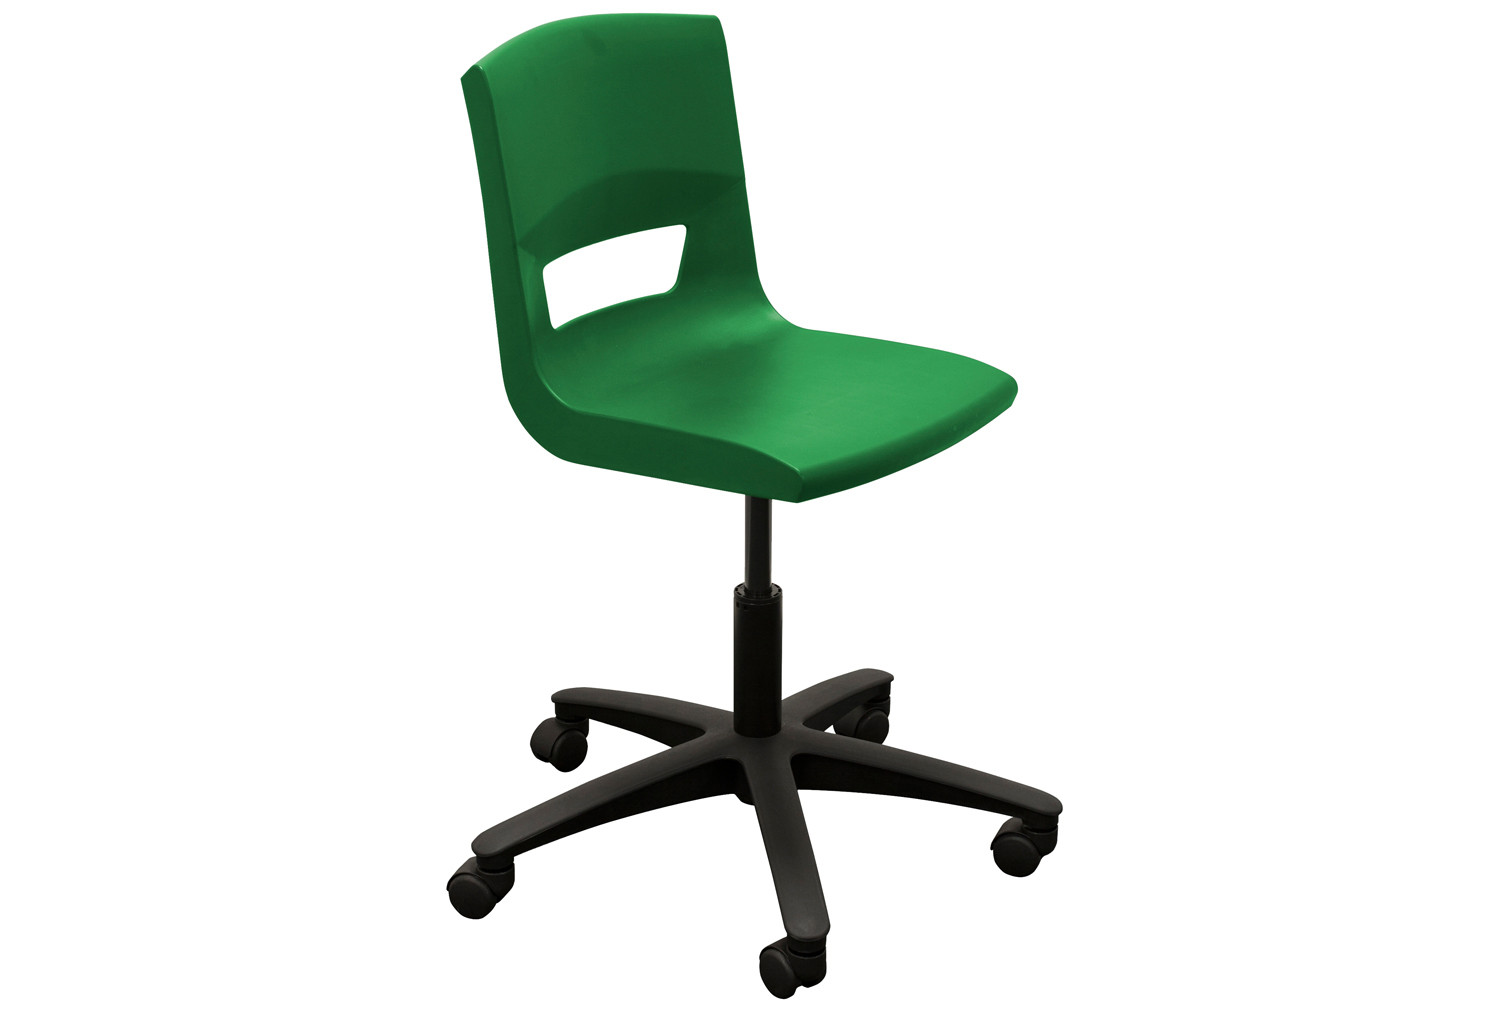 10 X White Task Chair. Find Loads More Colours, Materials & Styles Online - Buy Office Furniture Online